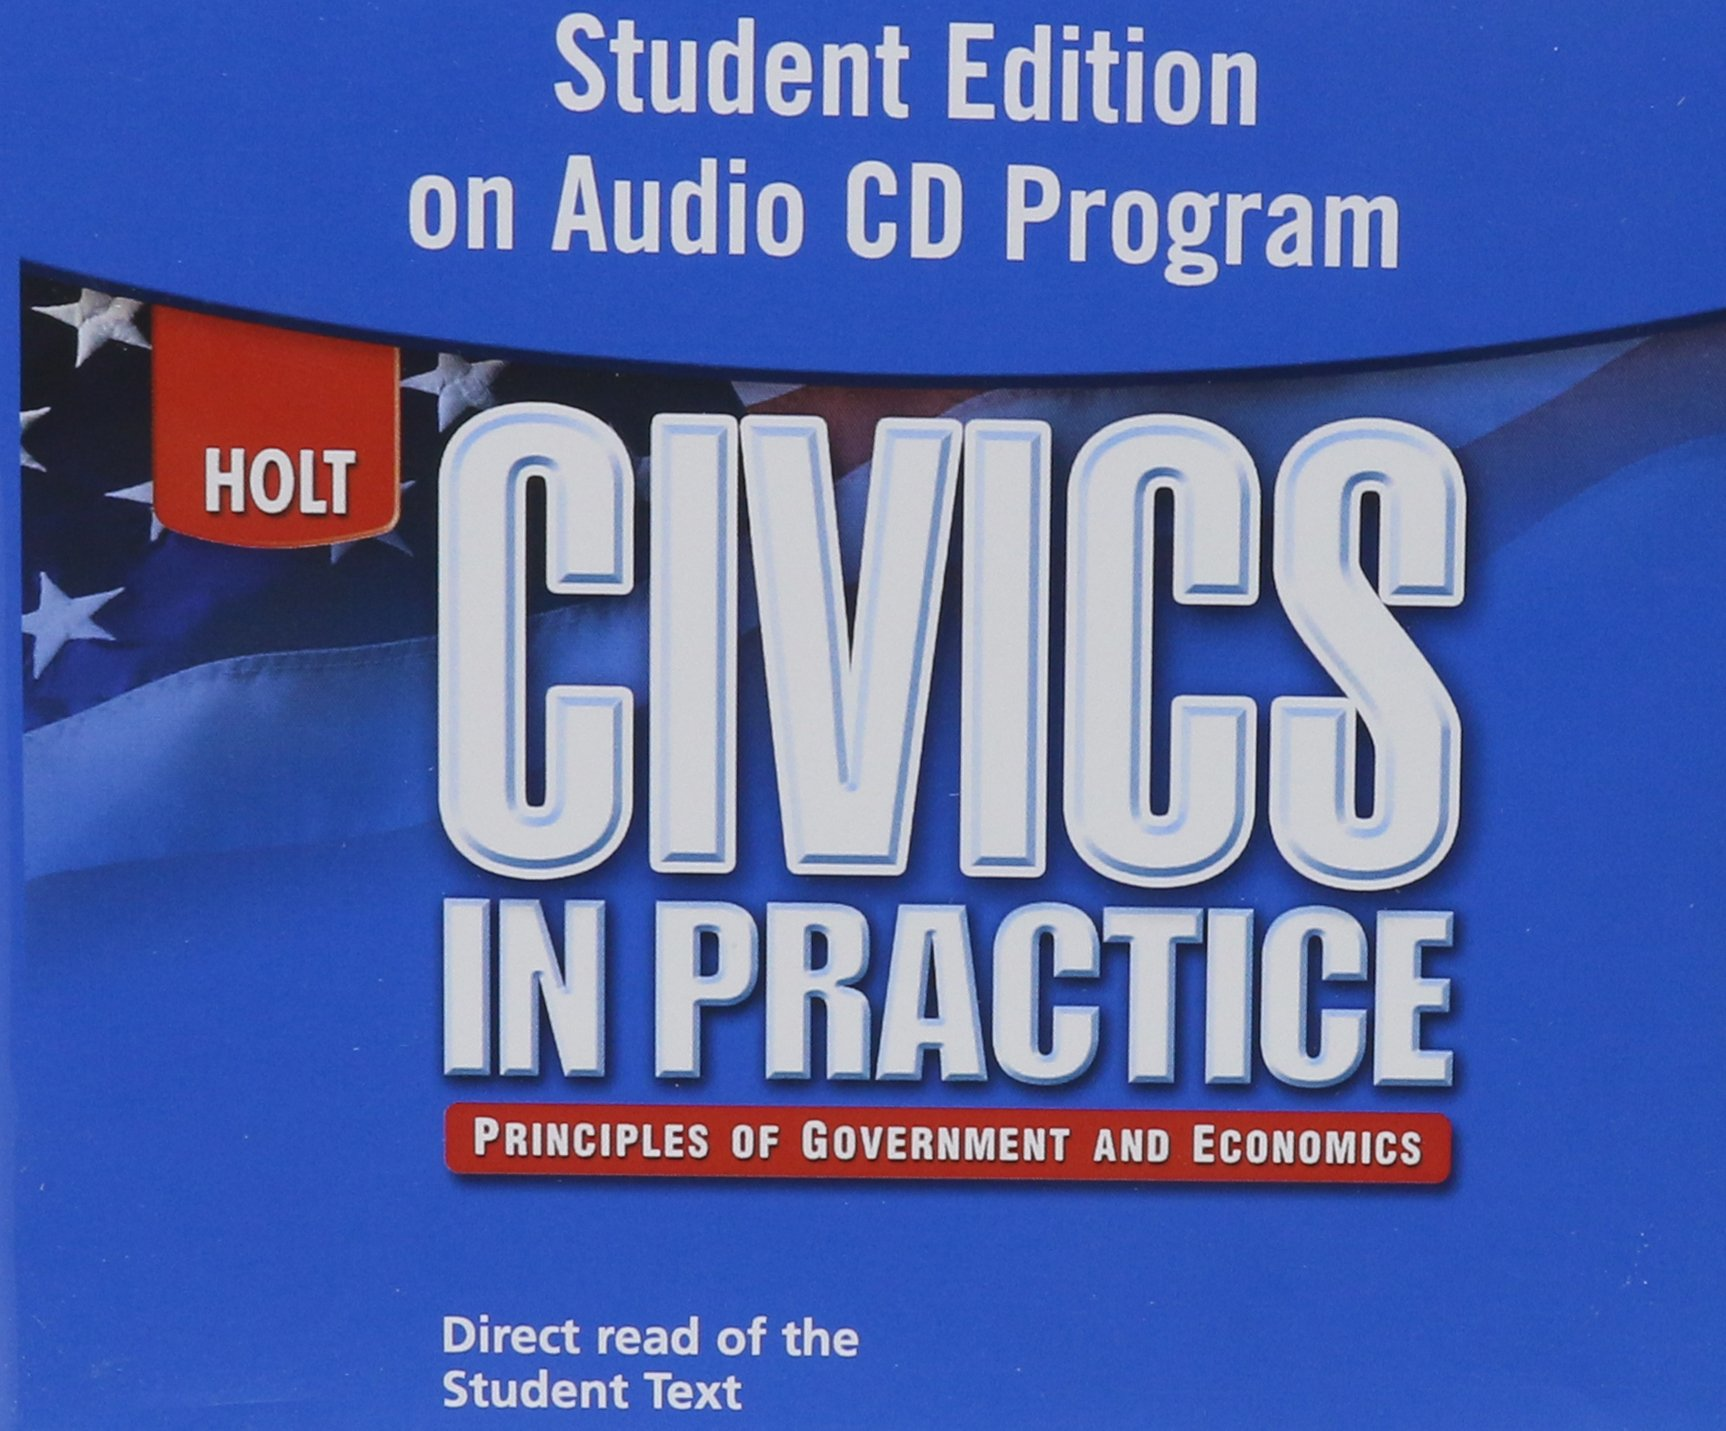 Civics in Practice: Principles of Government and Economics: Student Edition on Audio CD-ROM by HOLT, RINEHART AND WINSTON